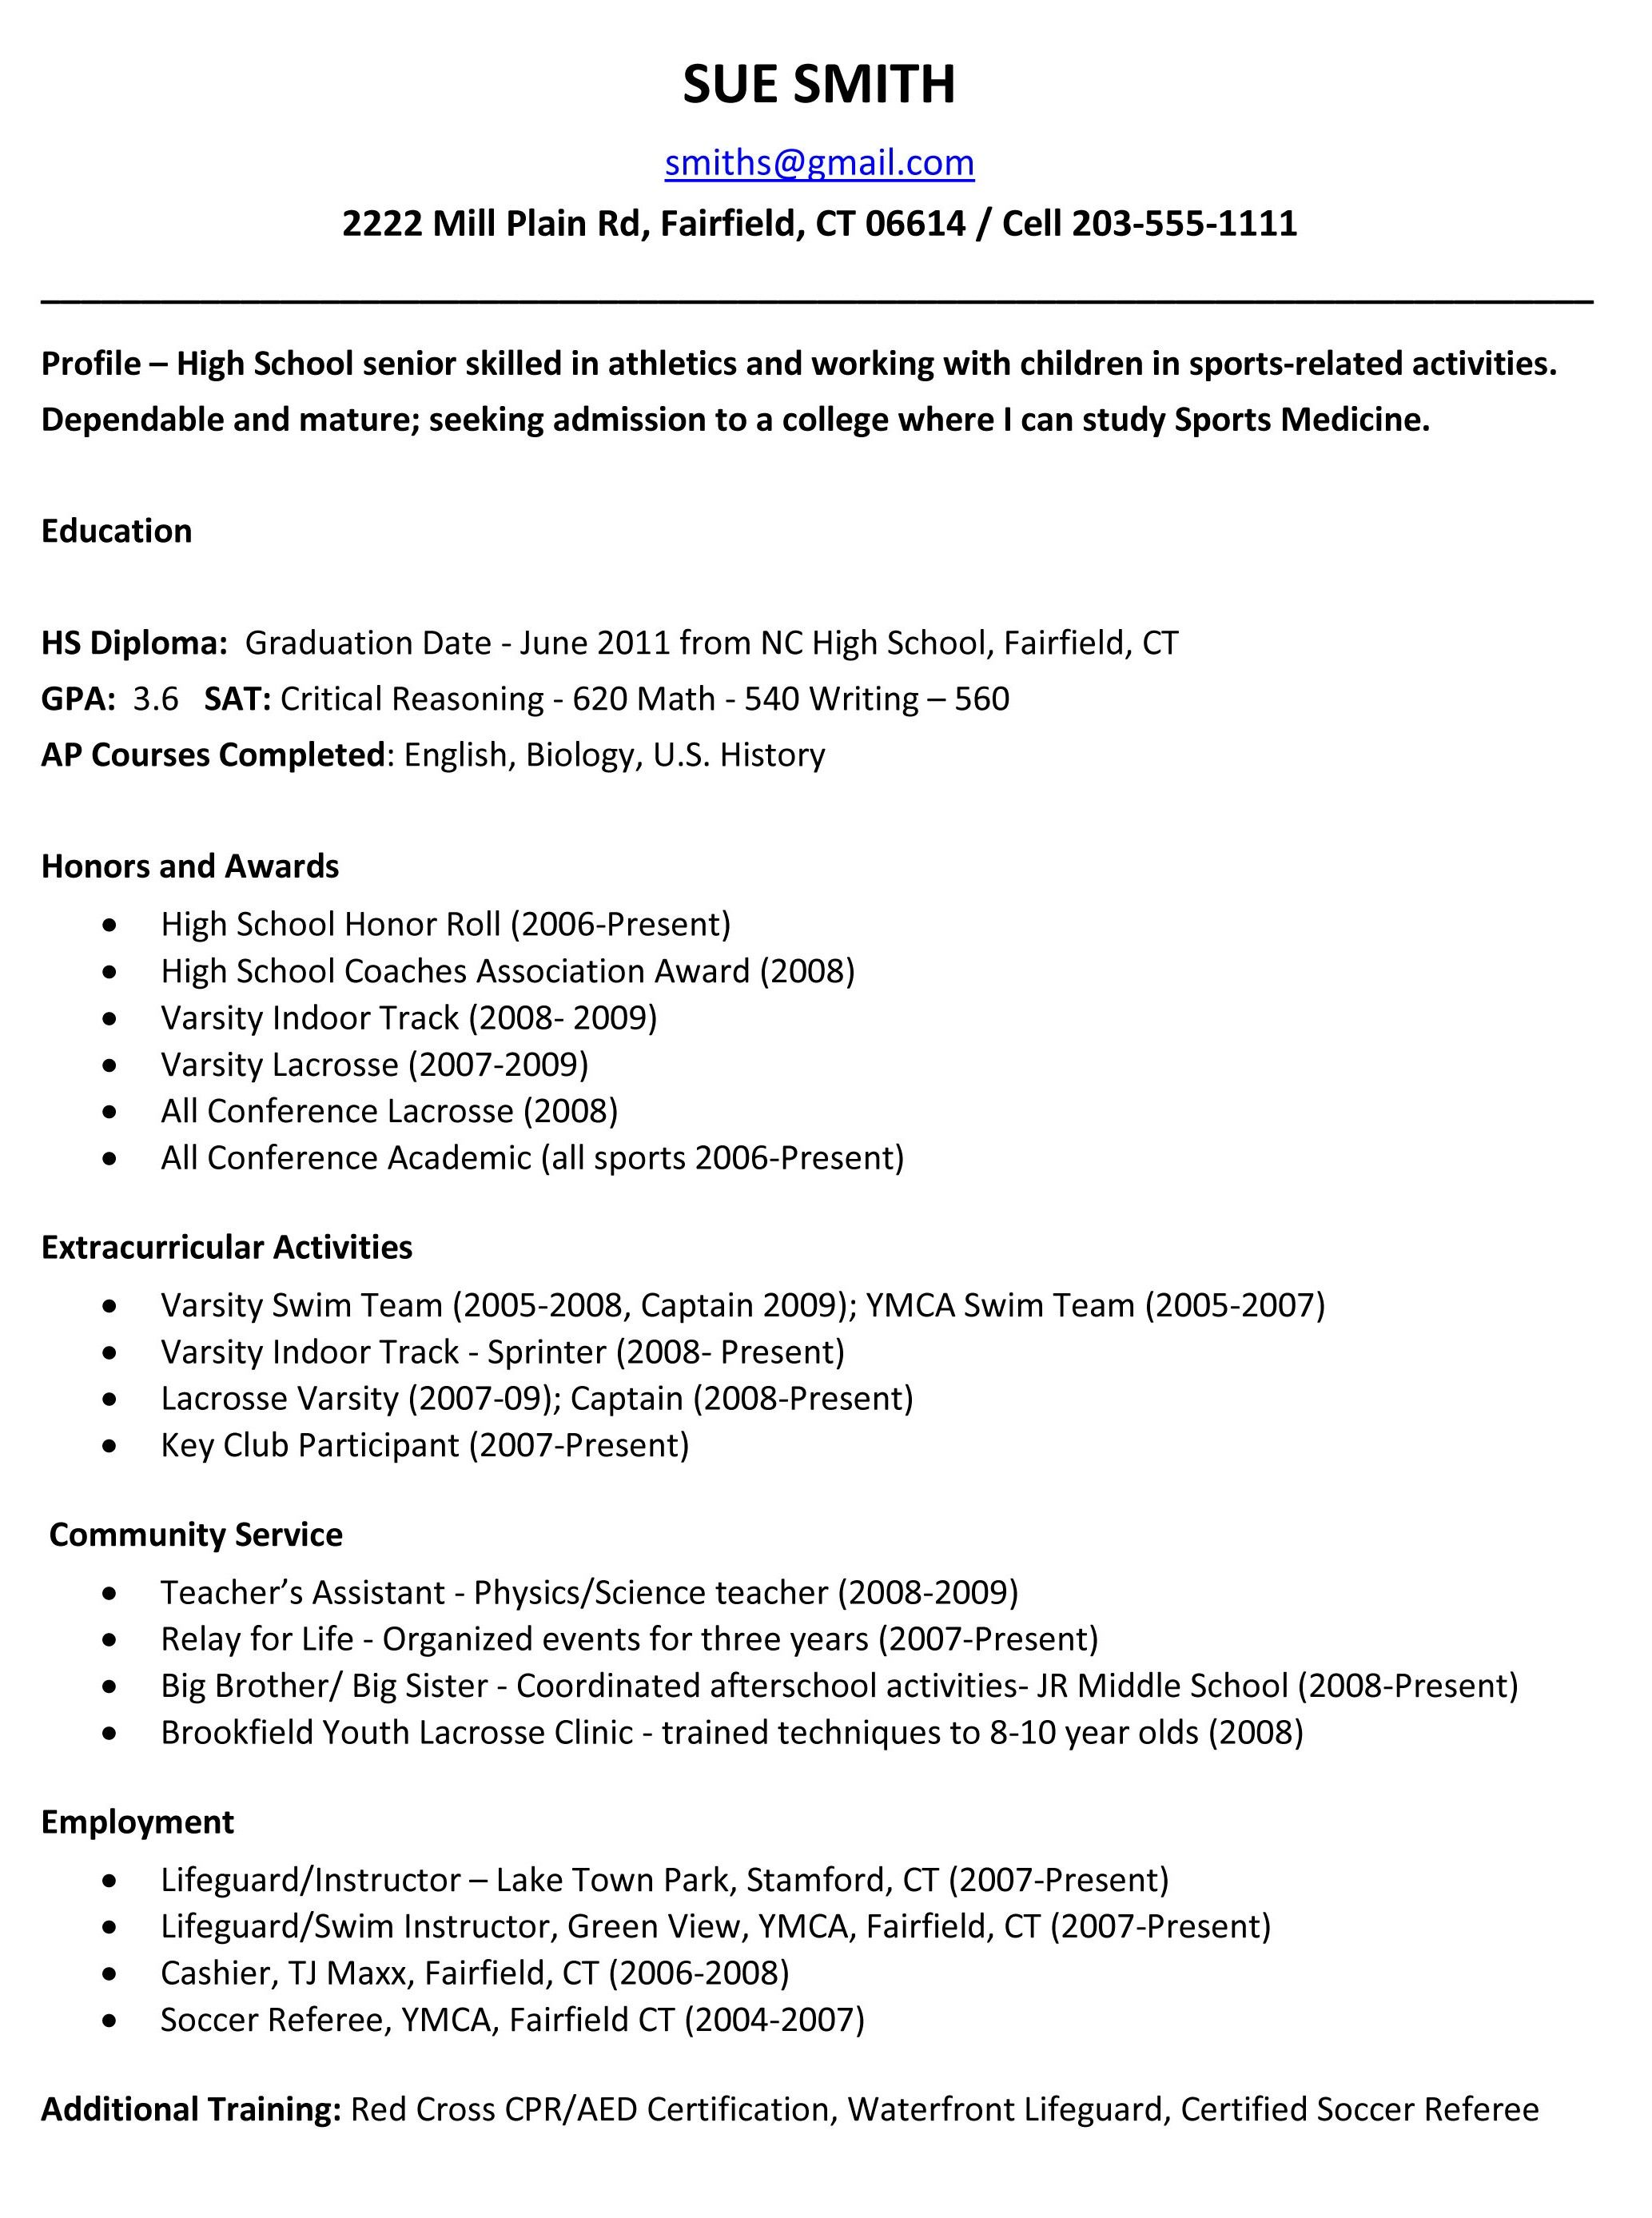 example resume for high school students for college applications school resume templateregularmidwesternerscom regularmidwesterners - Sample College Resumes